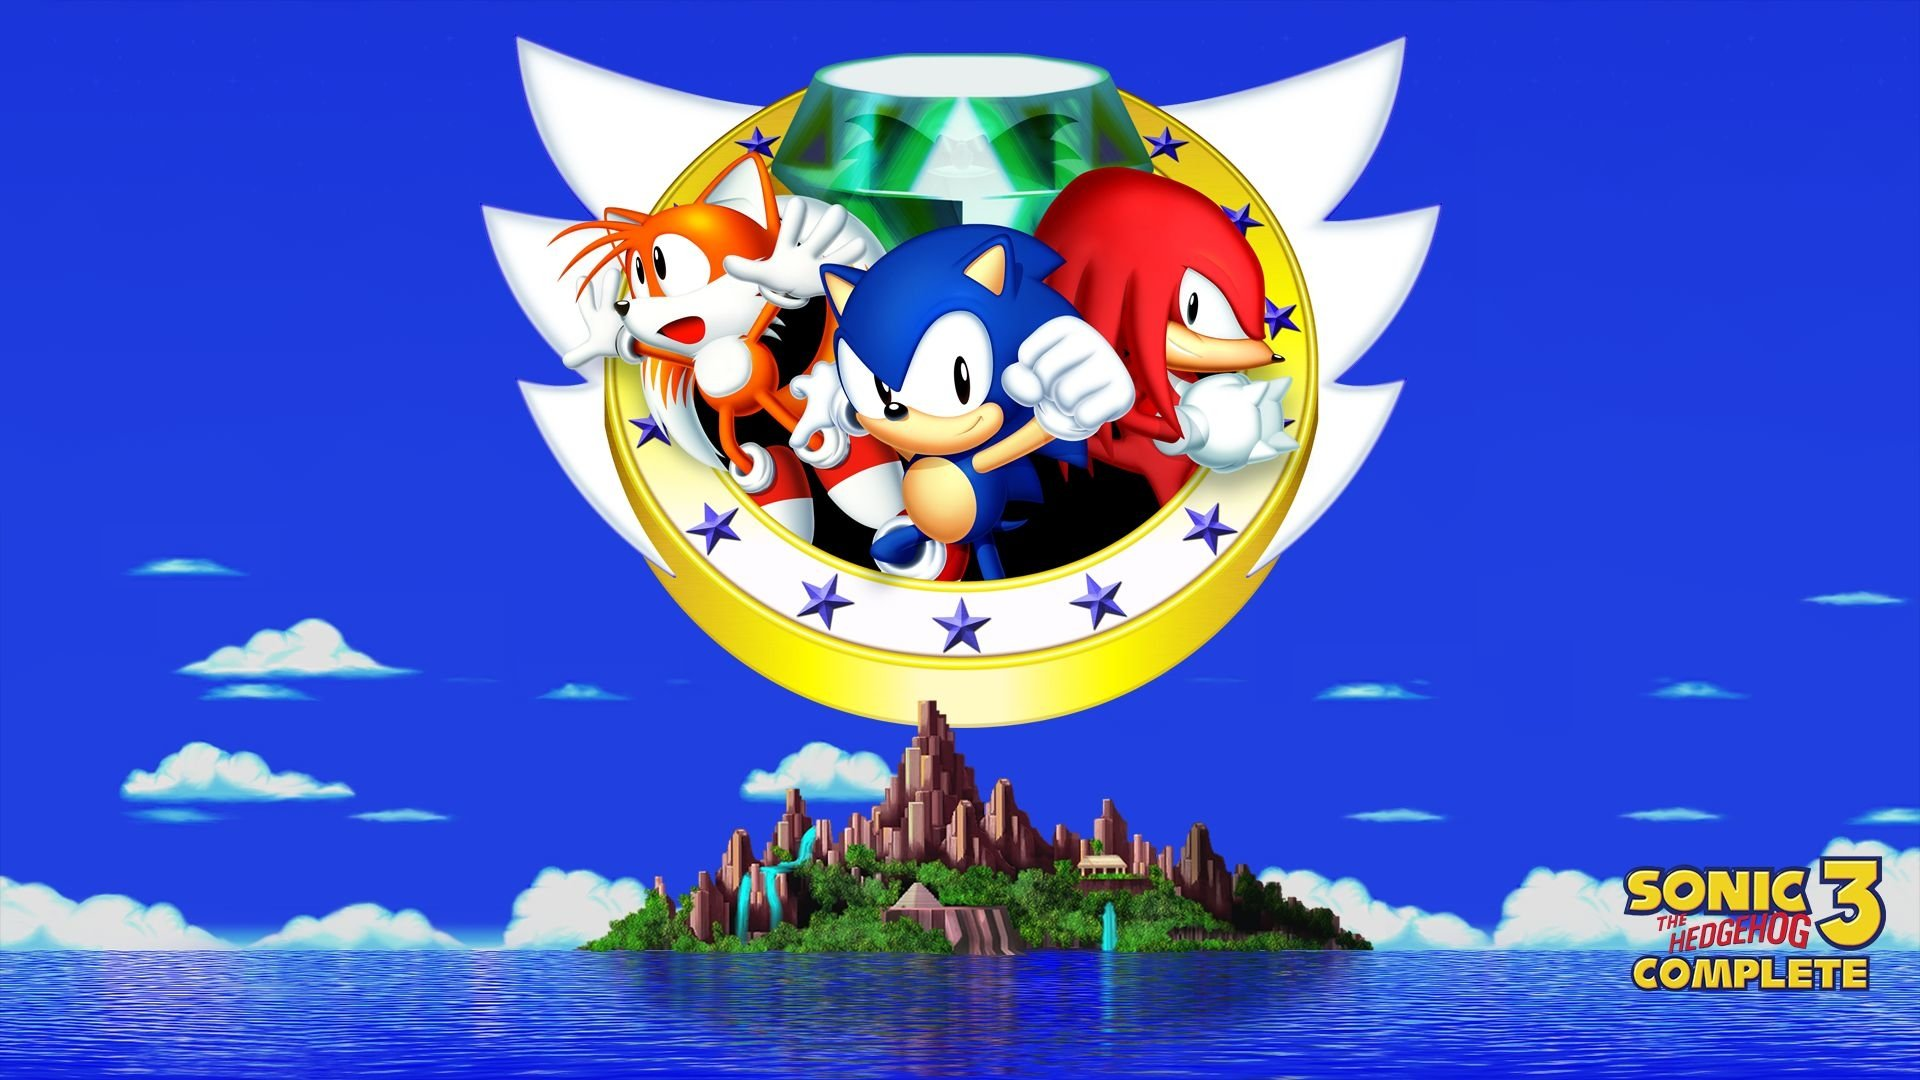 5 sonic the hedgehog 3 hd wallpapers background images wallpaper